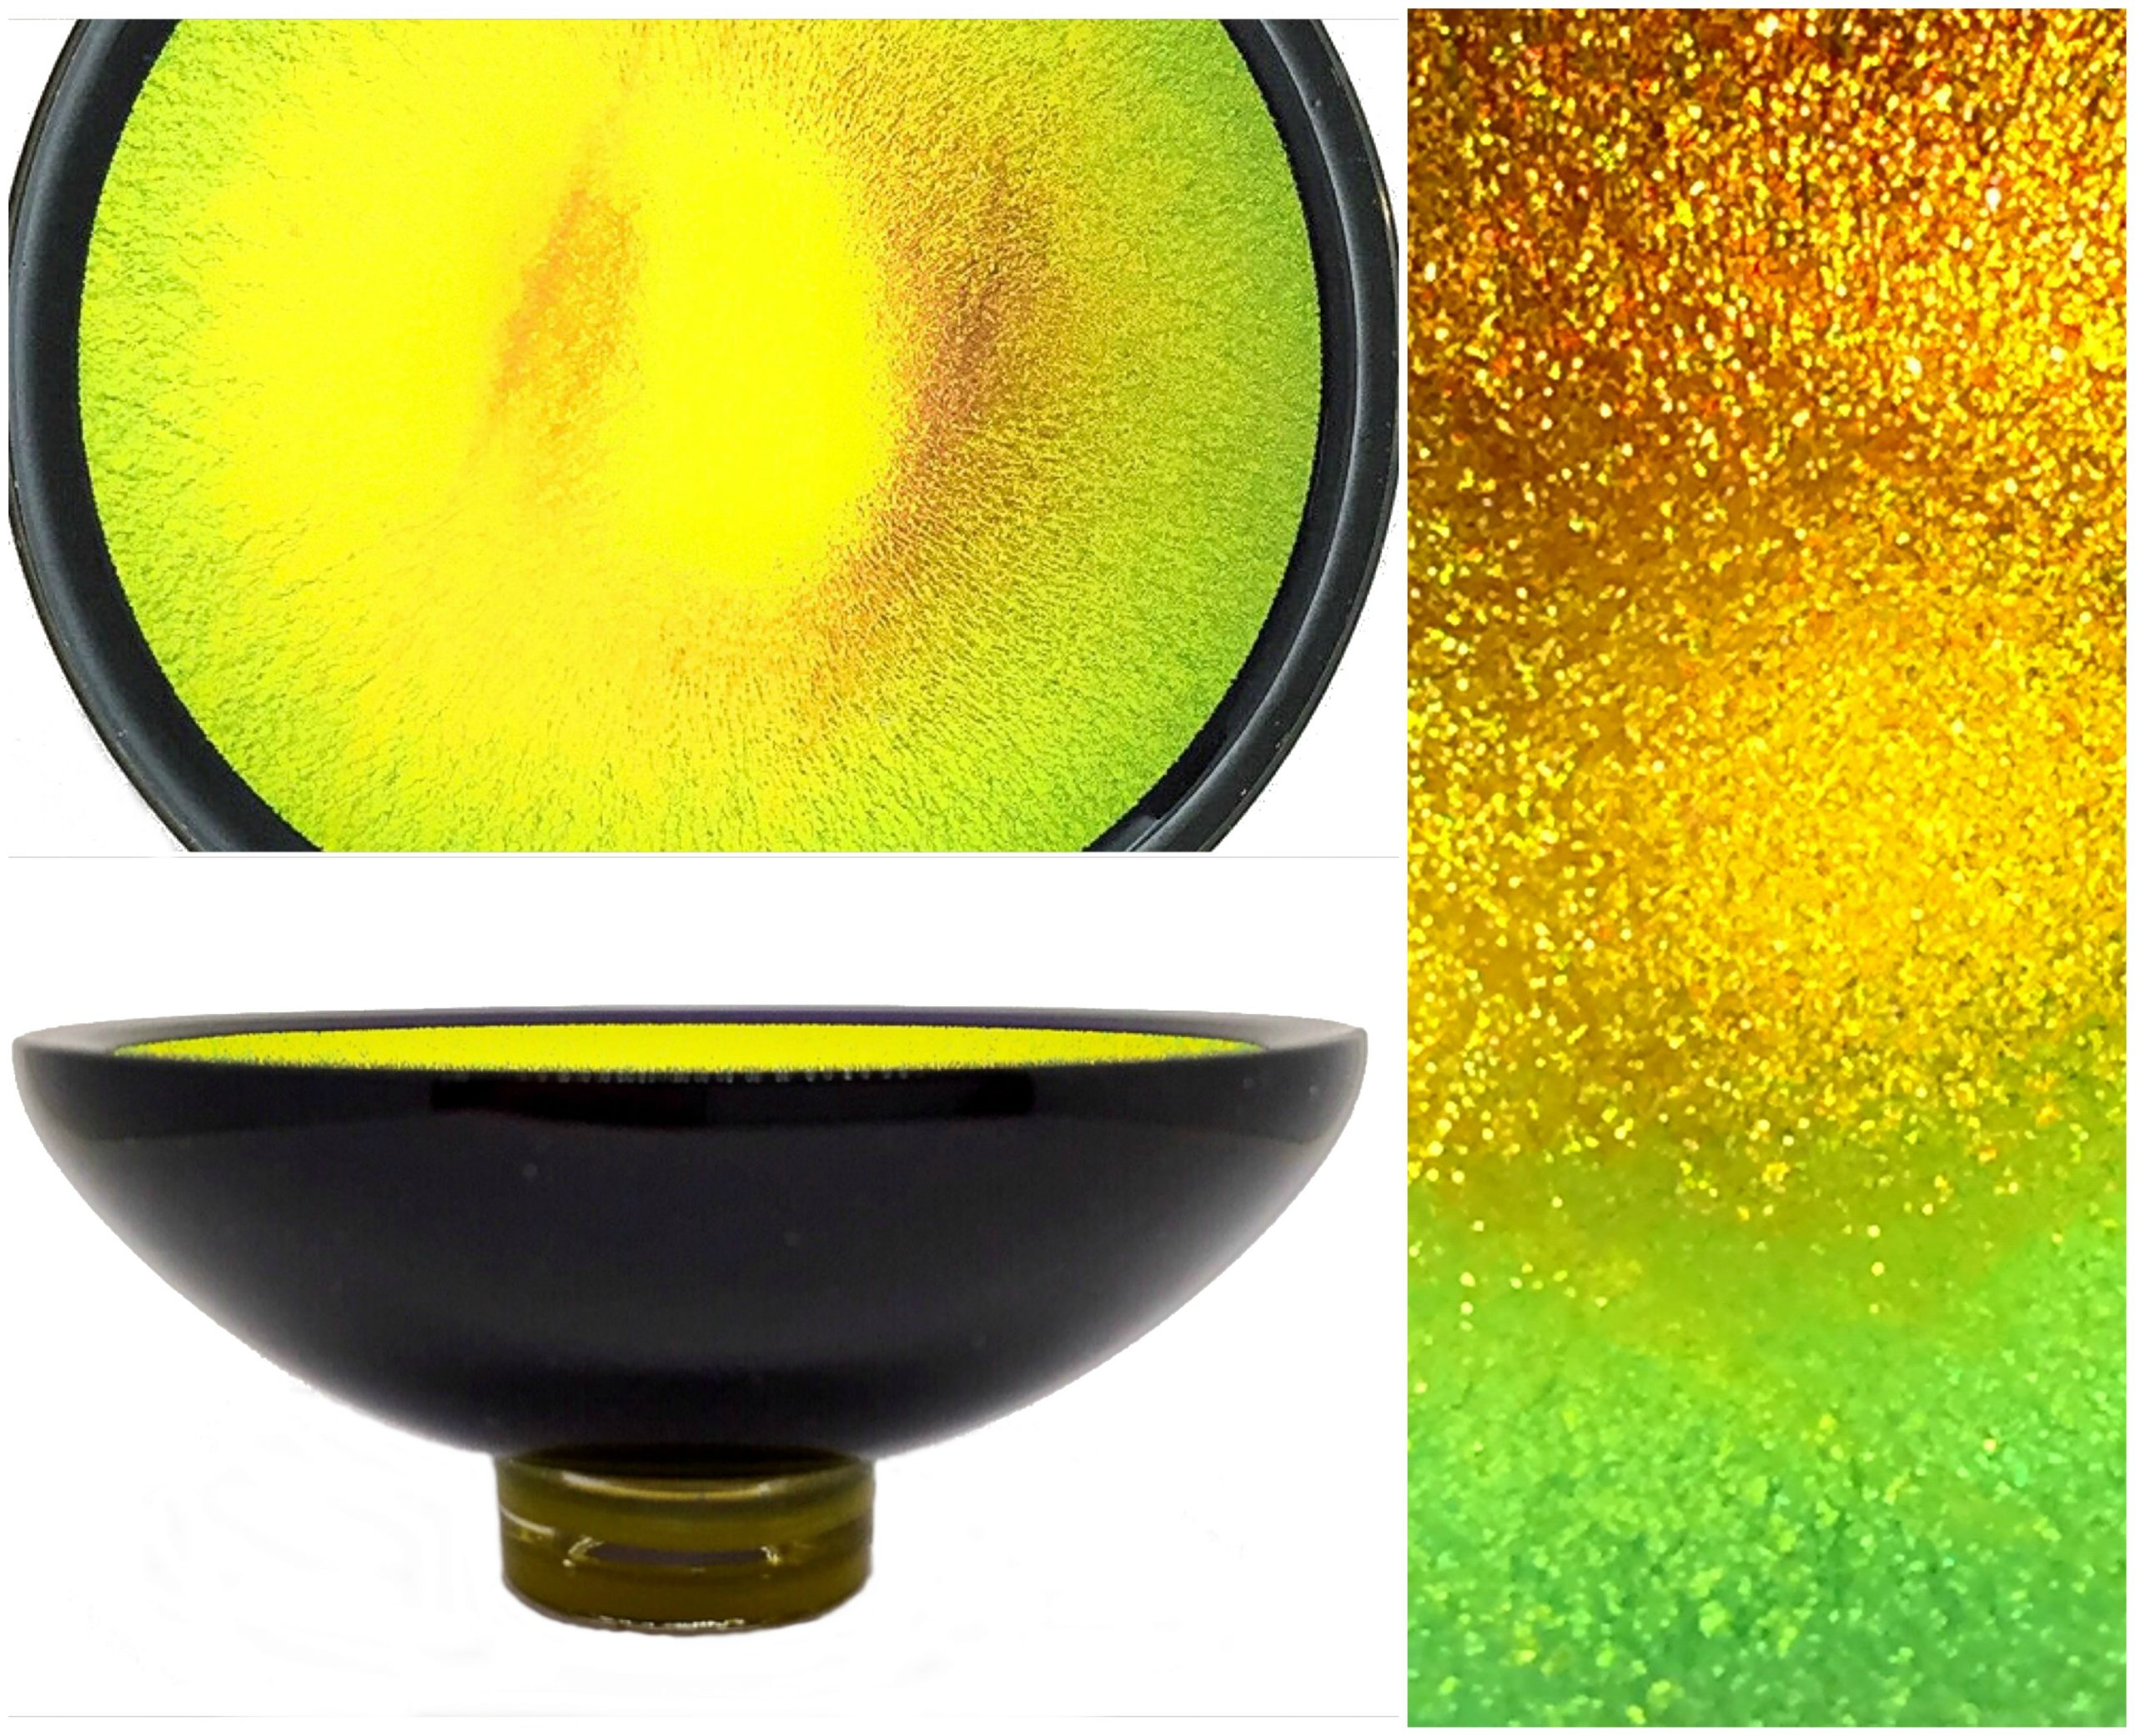 Multichrome Thing of Beauty 3053, dichroic glass bowl by Jo Ludwig | Effusion Art Gallery + Glass Studio, Invermere BC